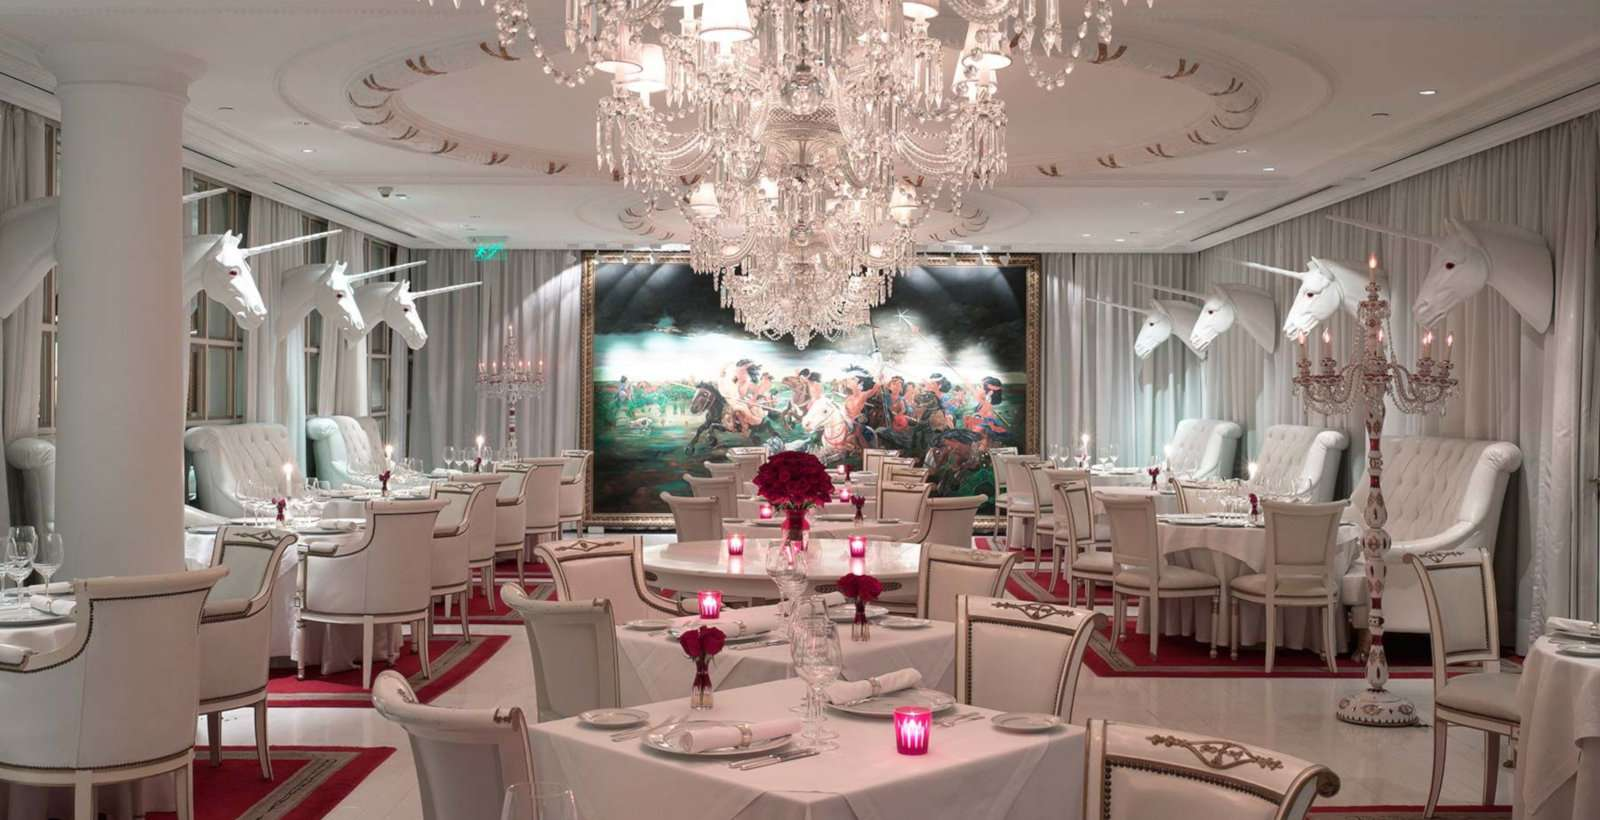 Gay travellers to Buenos Aires will love Faena Hotel, especially the unicorn-decorated Bistro Sur.